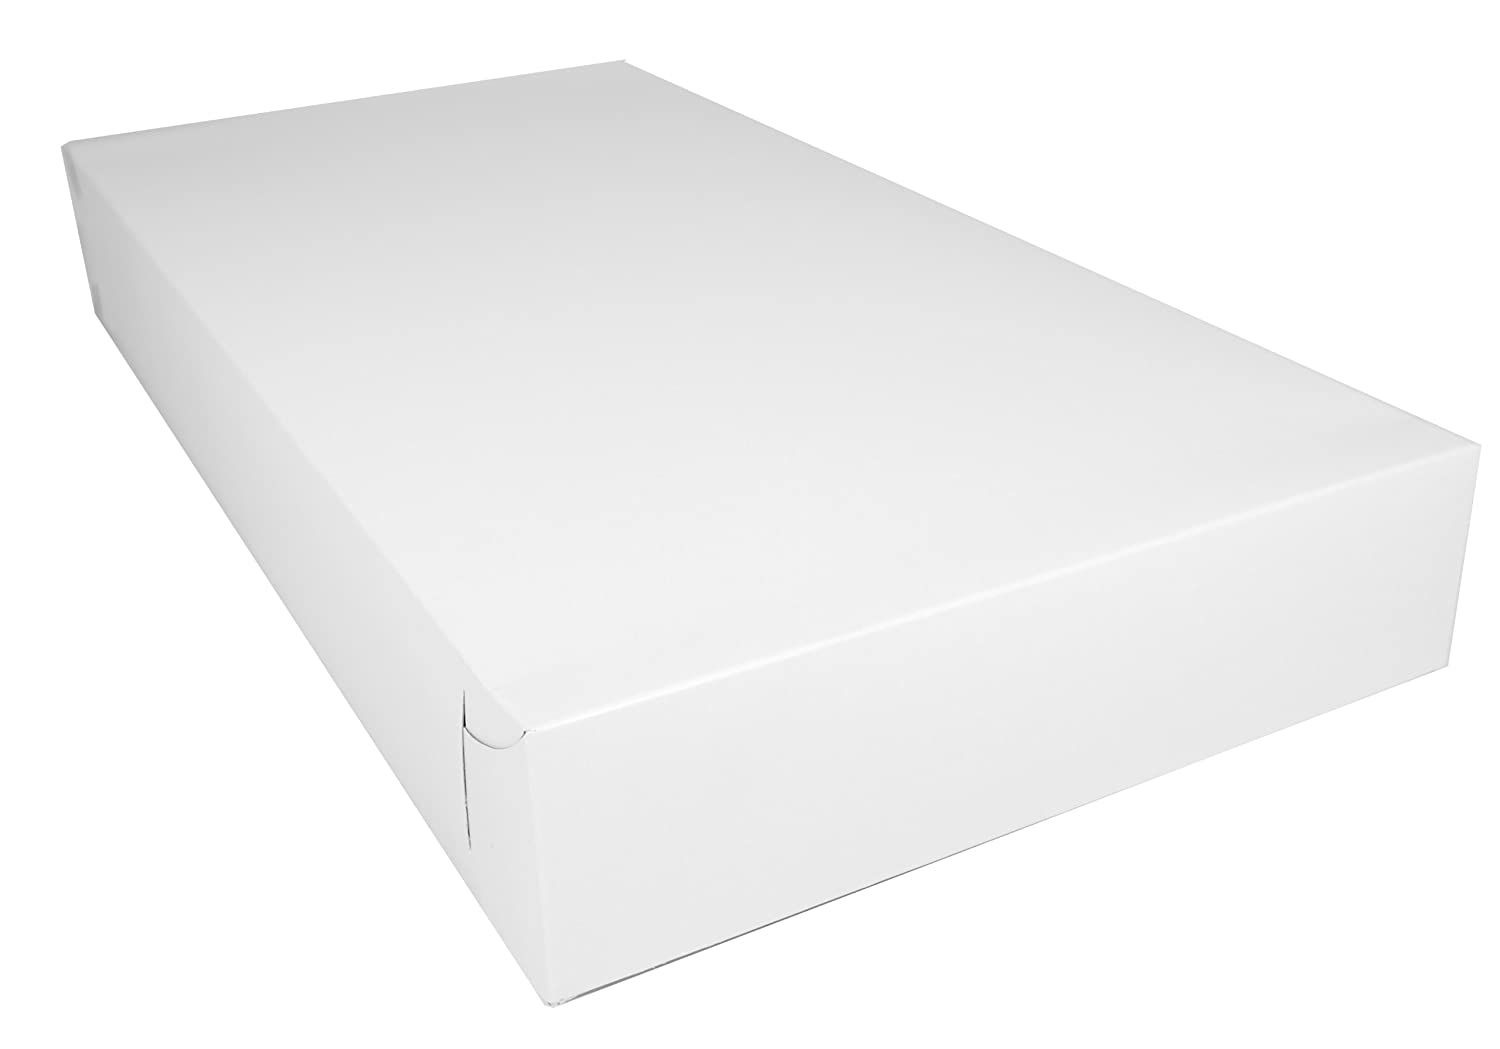 Southern Champion Tray 2037 Clay Coated Kraft Paperboard White Lock Corner Donut Tray, 23